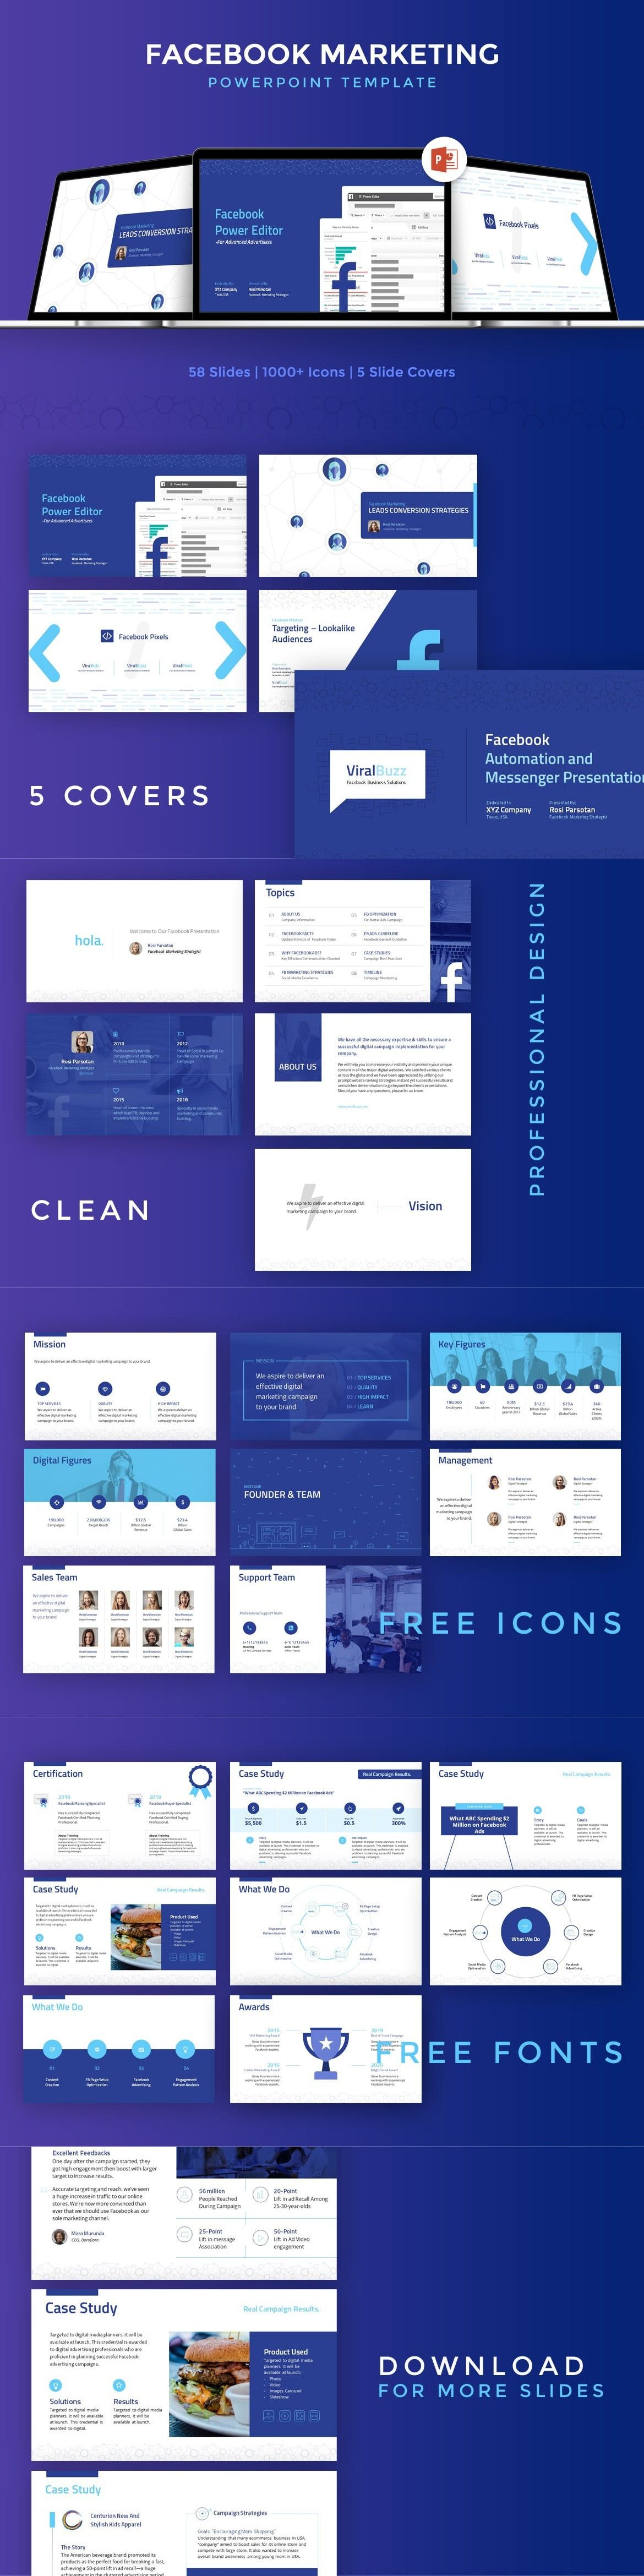 facebook marketing powerpoint template powerpoint presentation